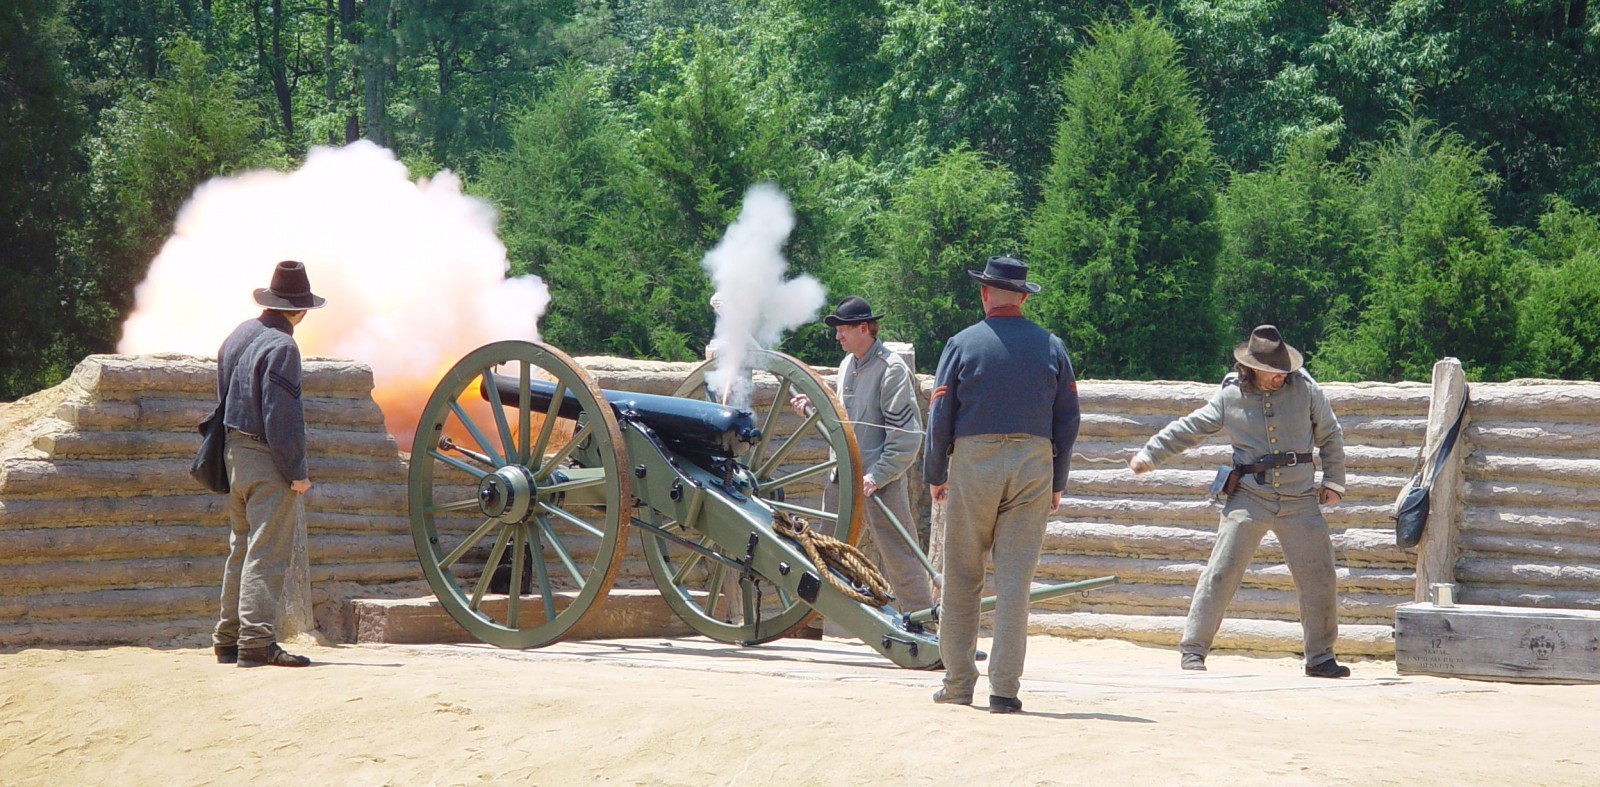 Fortifications Exhibit artillery demo